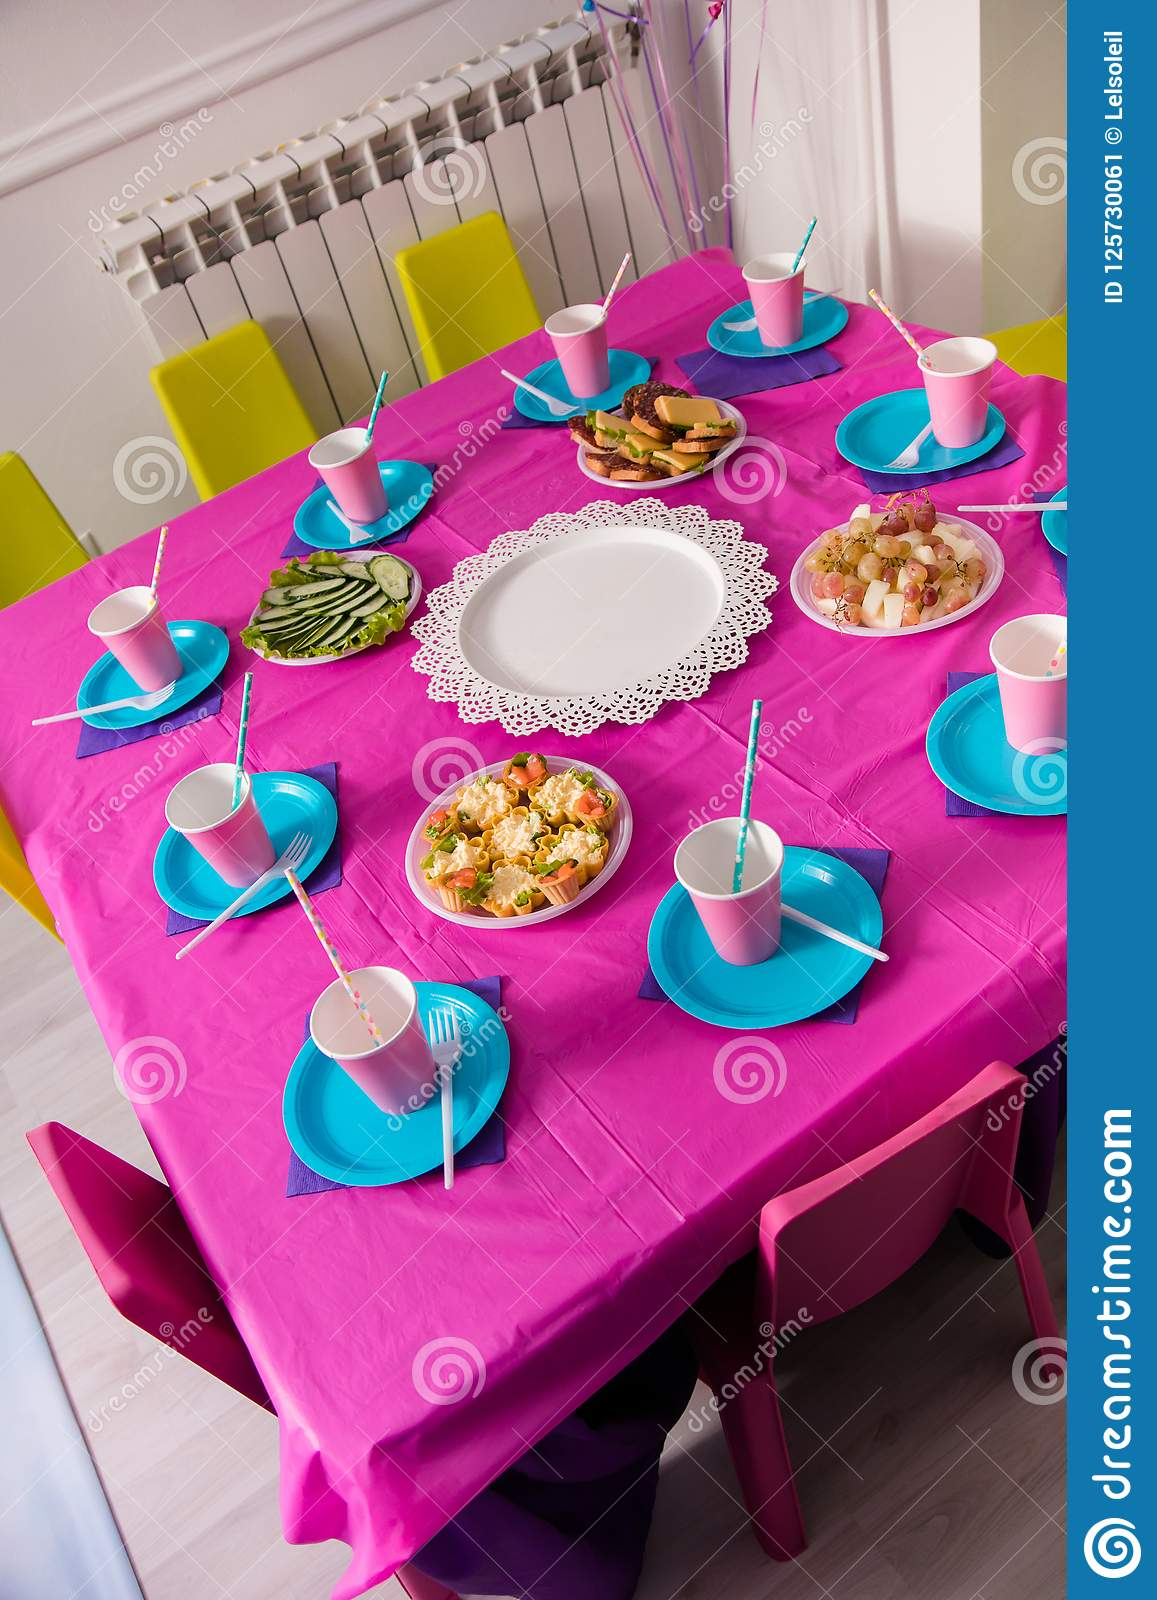 First Baby Girl Birthday Party Concept Table For Kids And Decor Items In Bright Pink